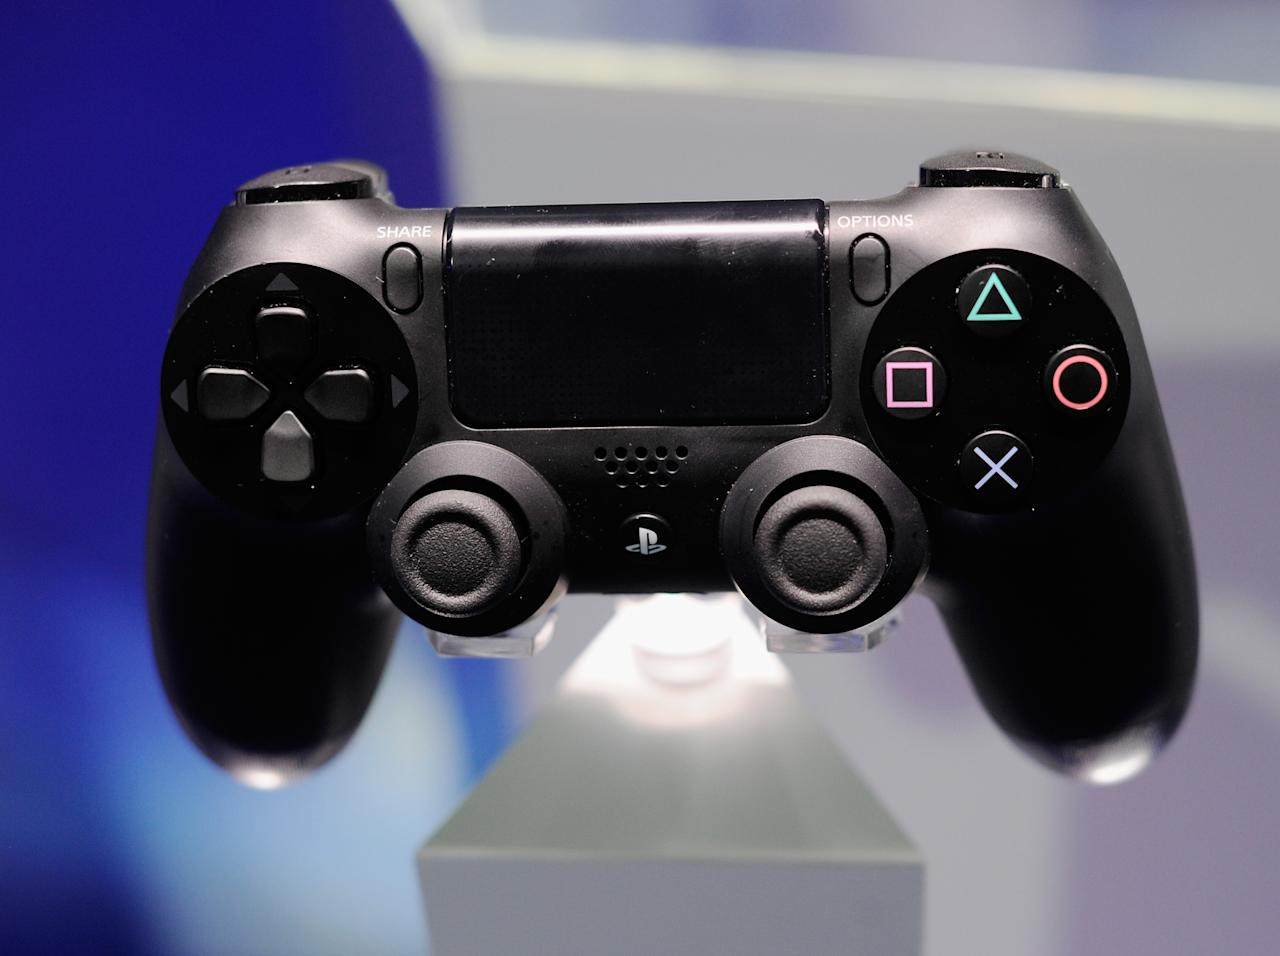 LOS ANGELES, CA - JUNE 11: A Playstation 4 and its controller is on display at the Sony Playstation E3 2013 booth at the Los Angeles Convention Center on June 11, 2013 in Los Angeles, California. Thousands are expected to attend the annual three-day convention to see the latest games and announcements from the gaming industry. (Photo by Kevork Djansezian/Getty Images)